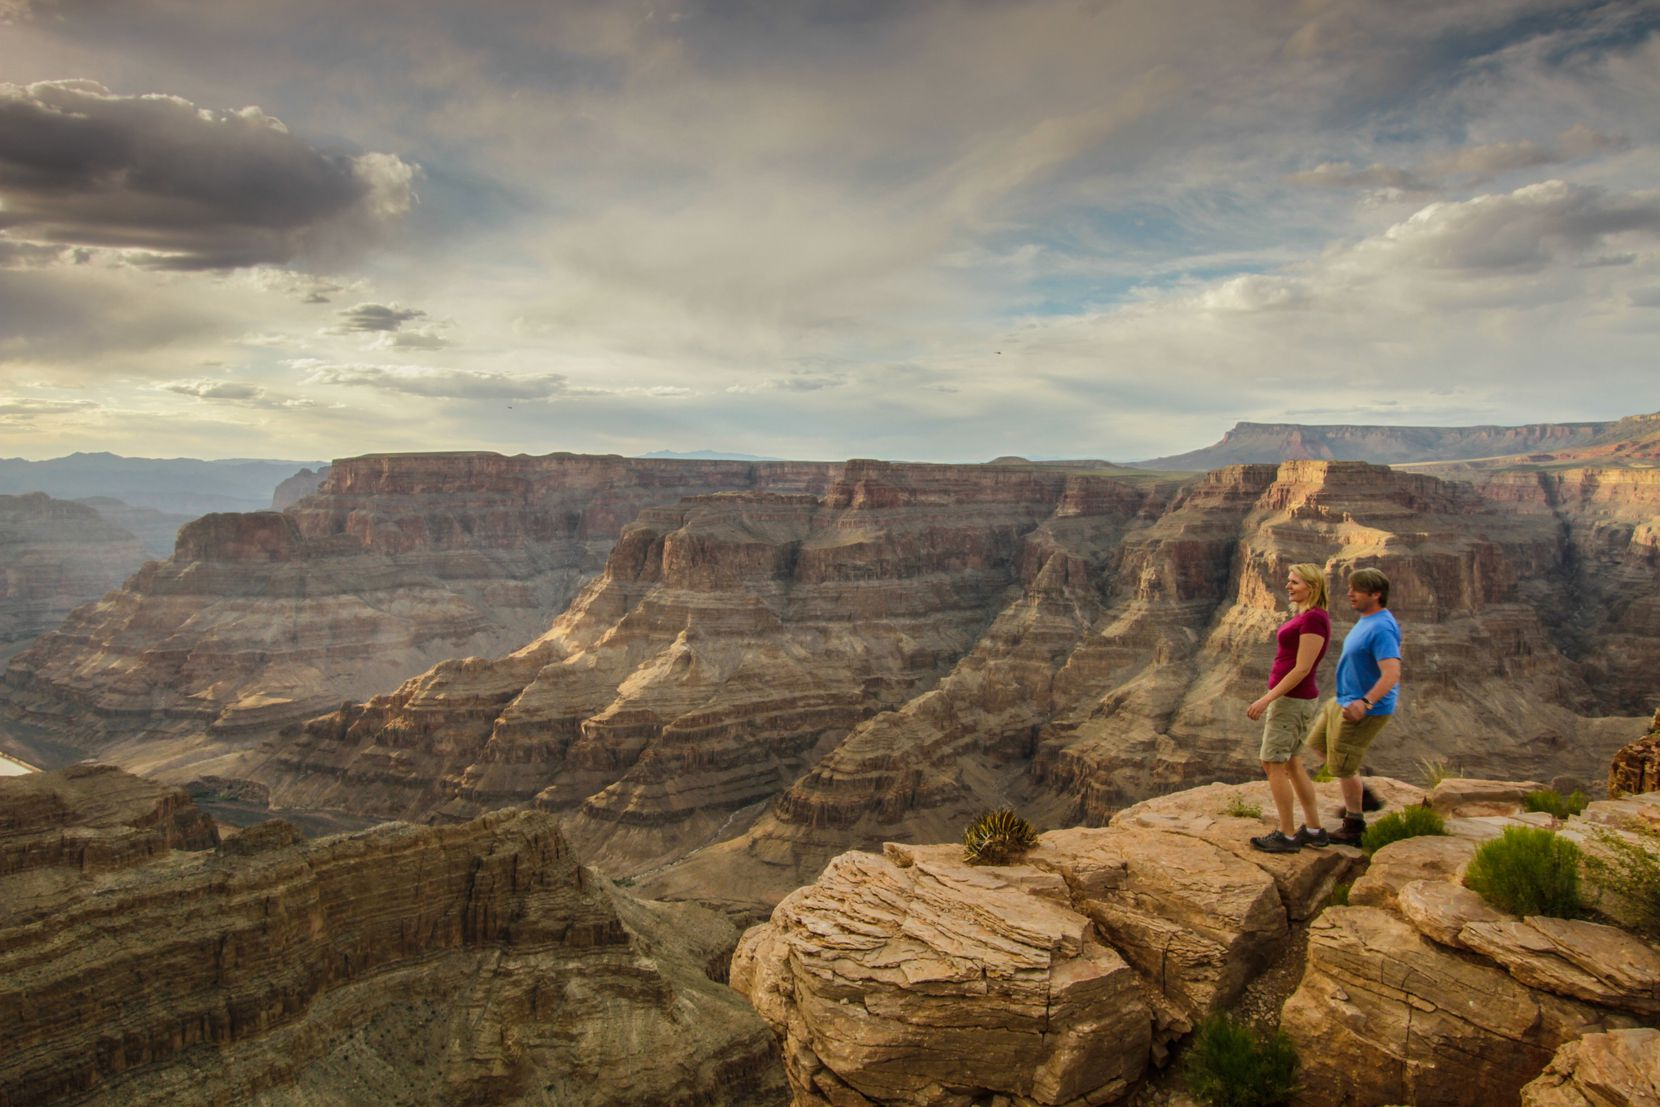 The Arizona National Scenic Trail traverses the Grand Canyon.